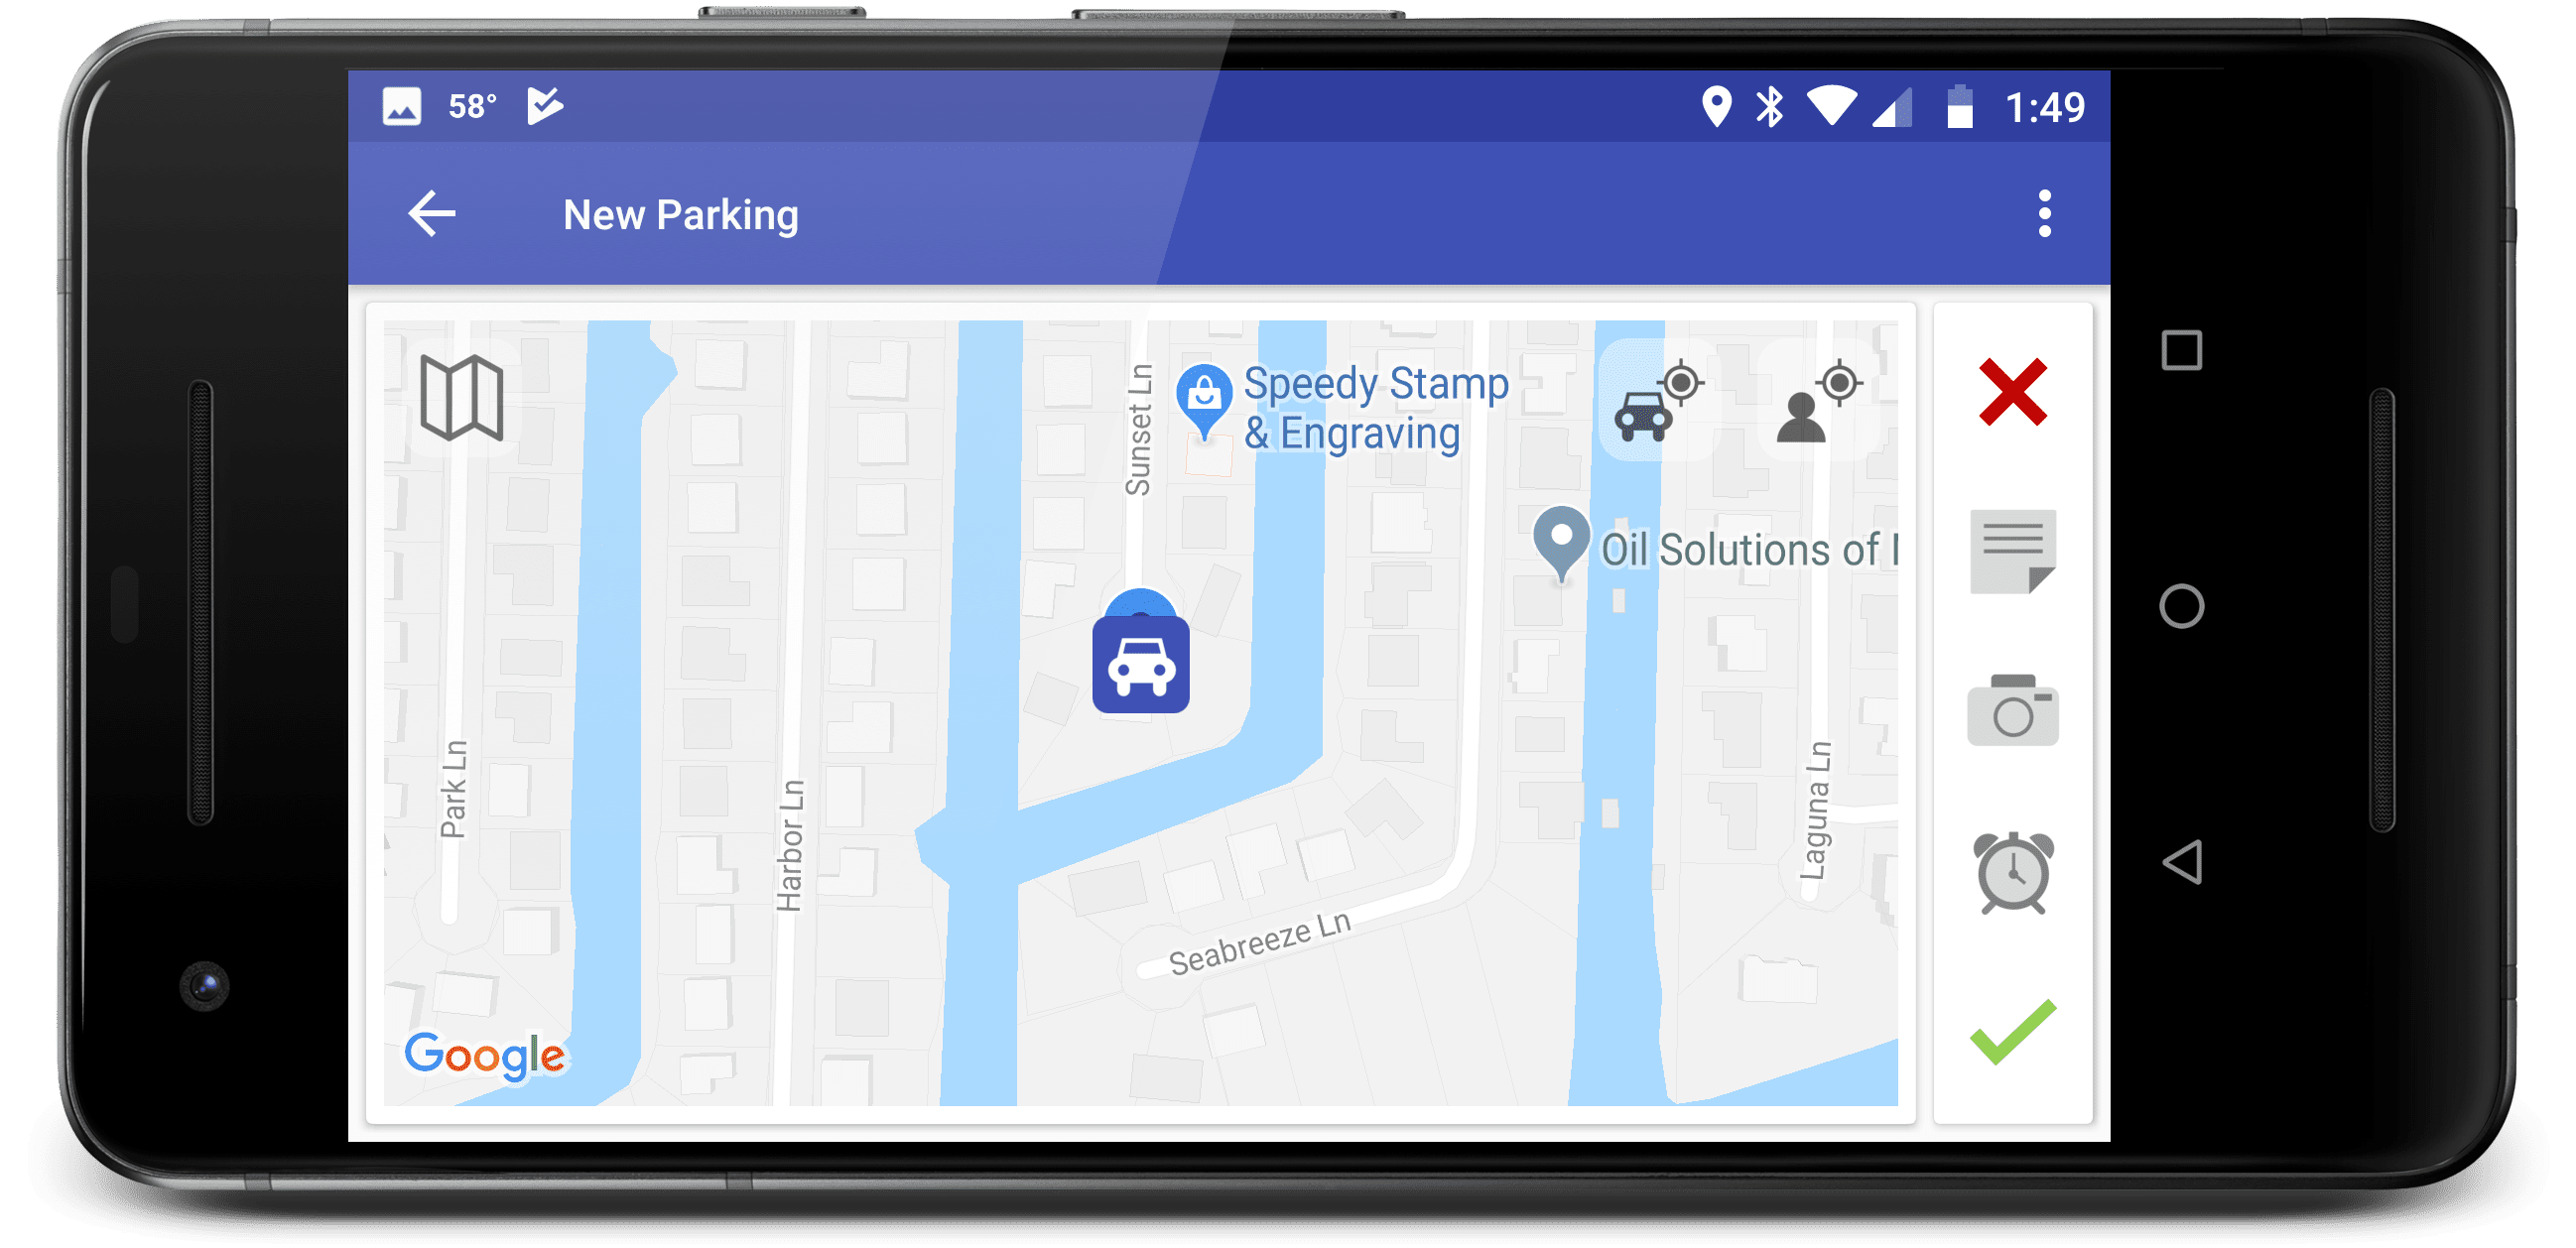 The ParKing app displayed on a phone